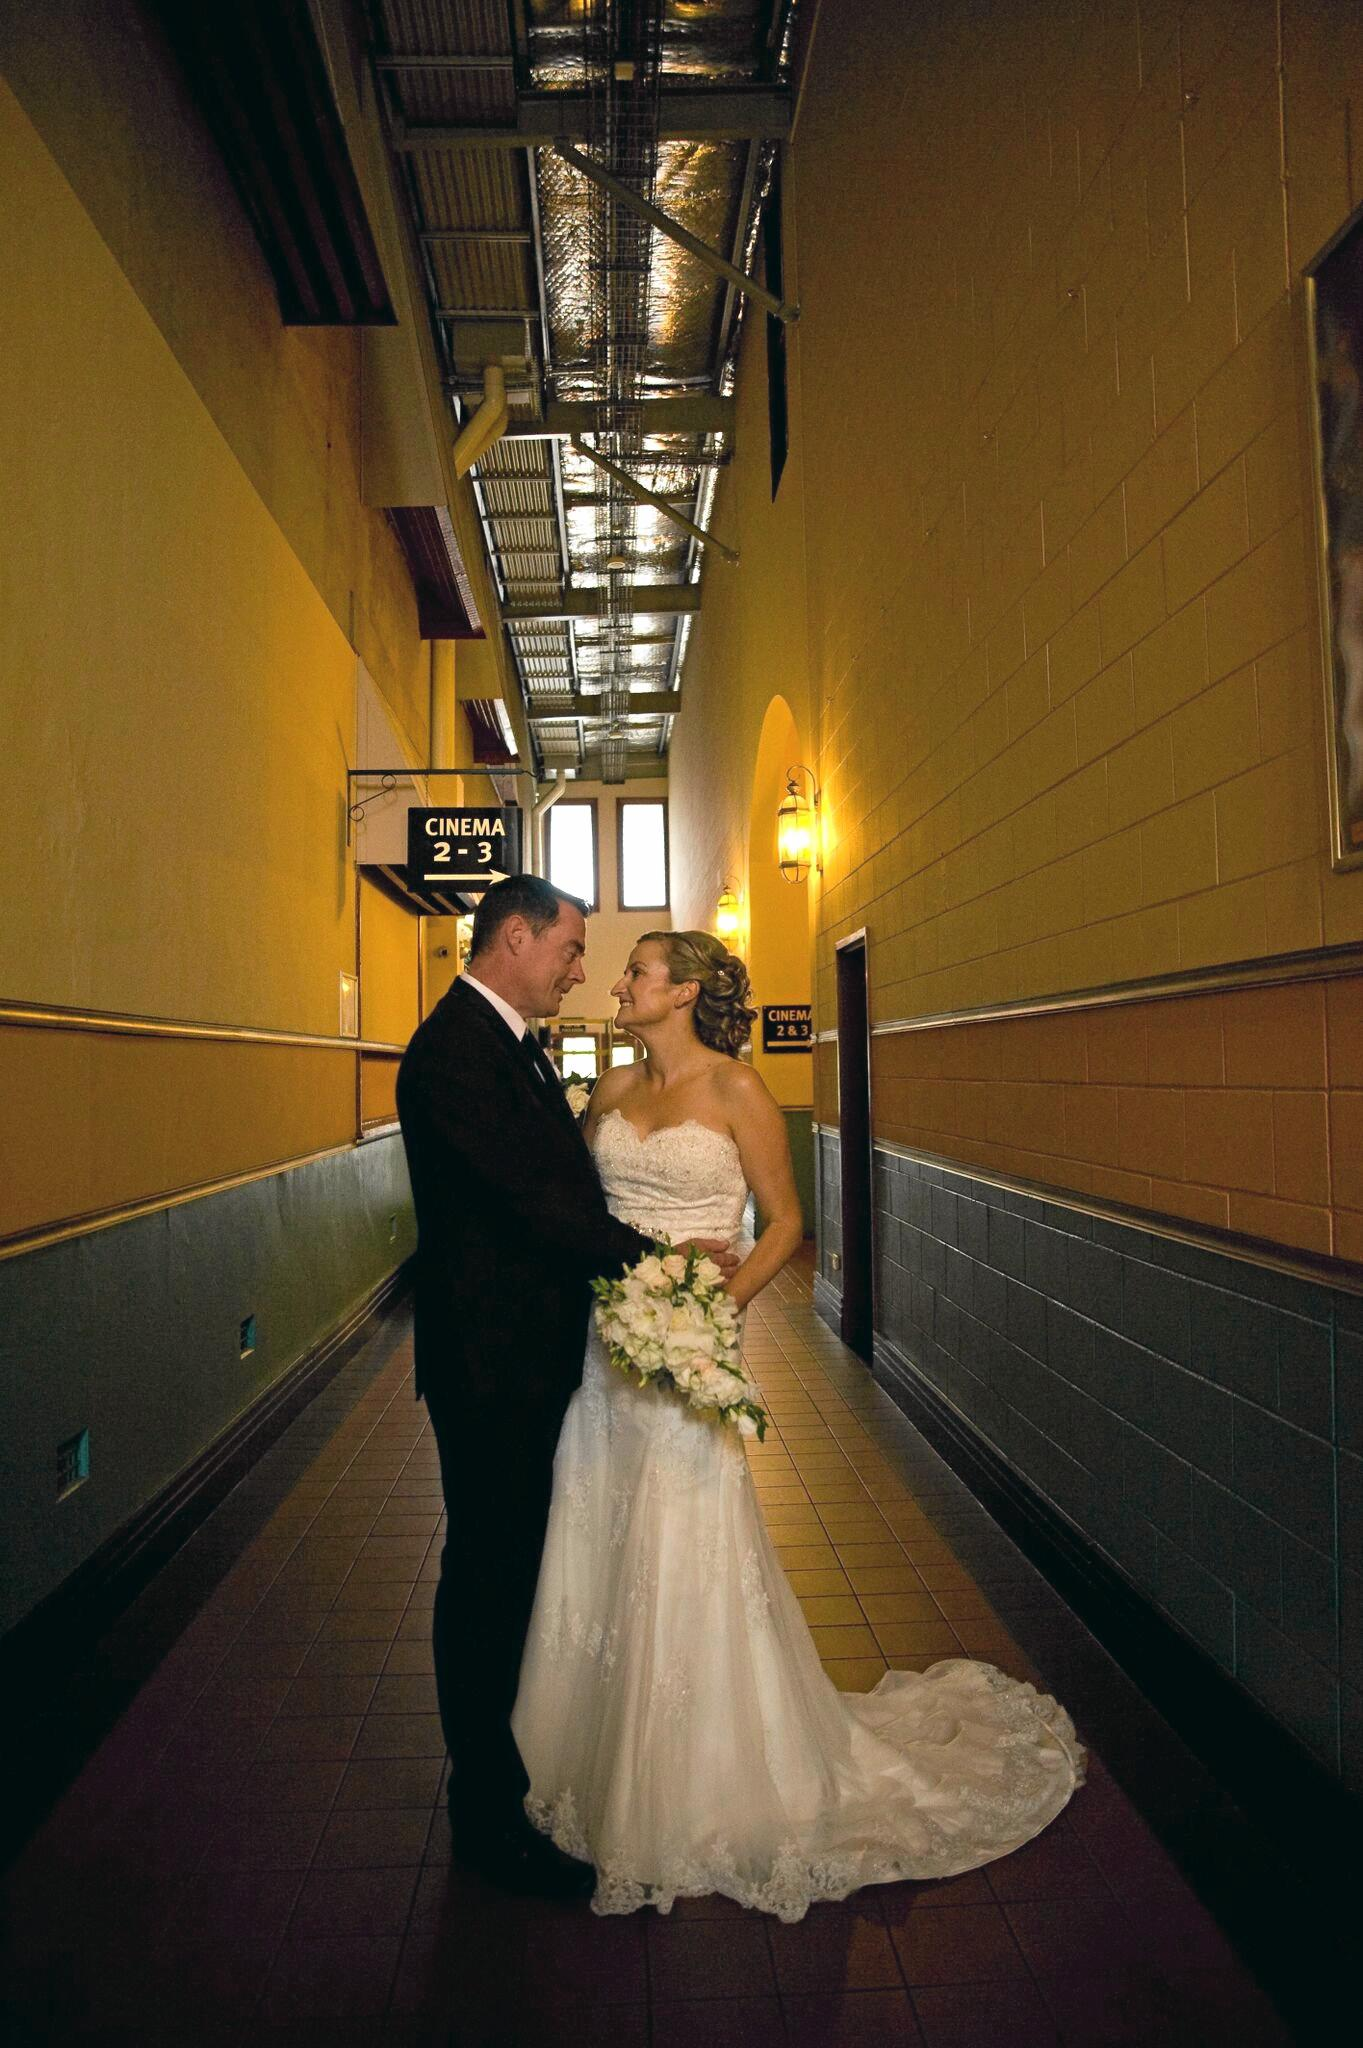 HAPPY DAY: Jason Connell and Sherry Wicken made history when they tied the knot at the Saraton Theatre on Saturday afternoon.